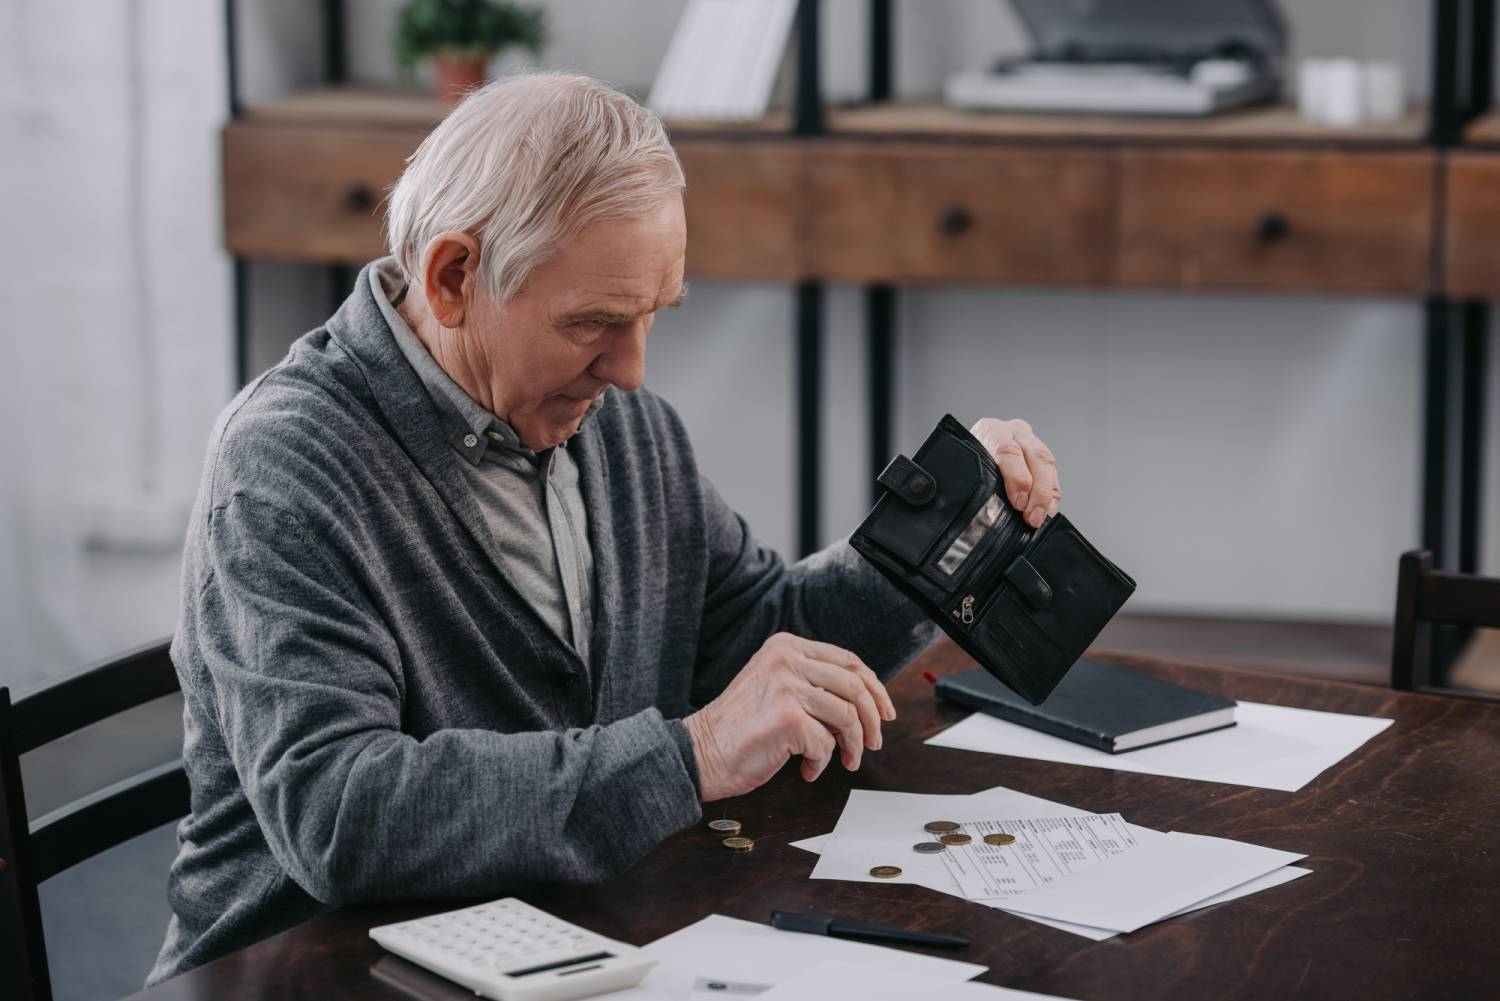 Male pensioner sitting at table with paperwork